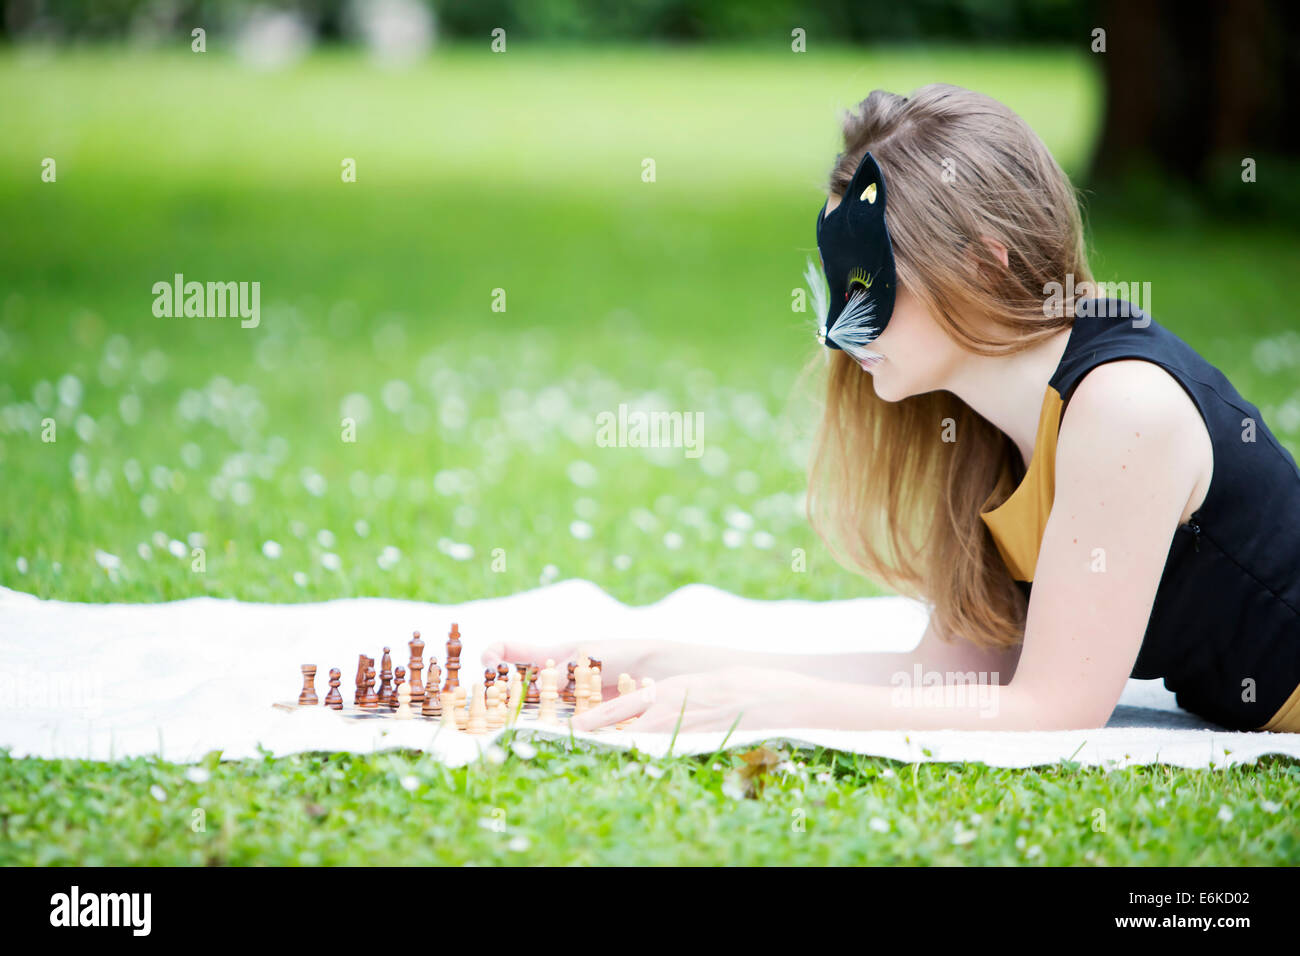 Young woman  with mask decide move chess piece - Stock Image